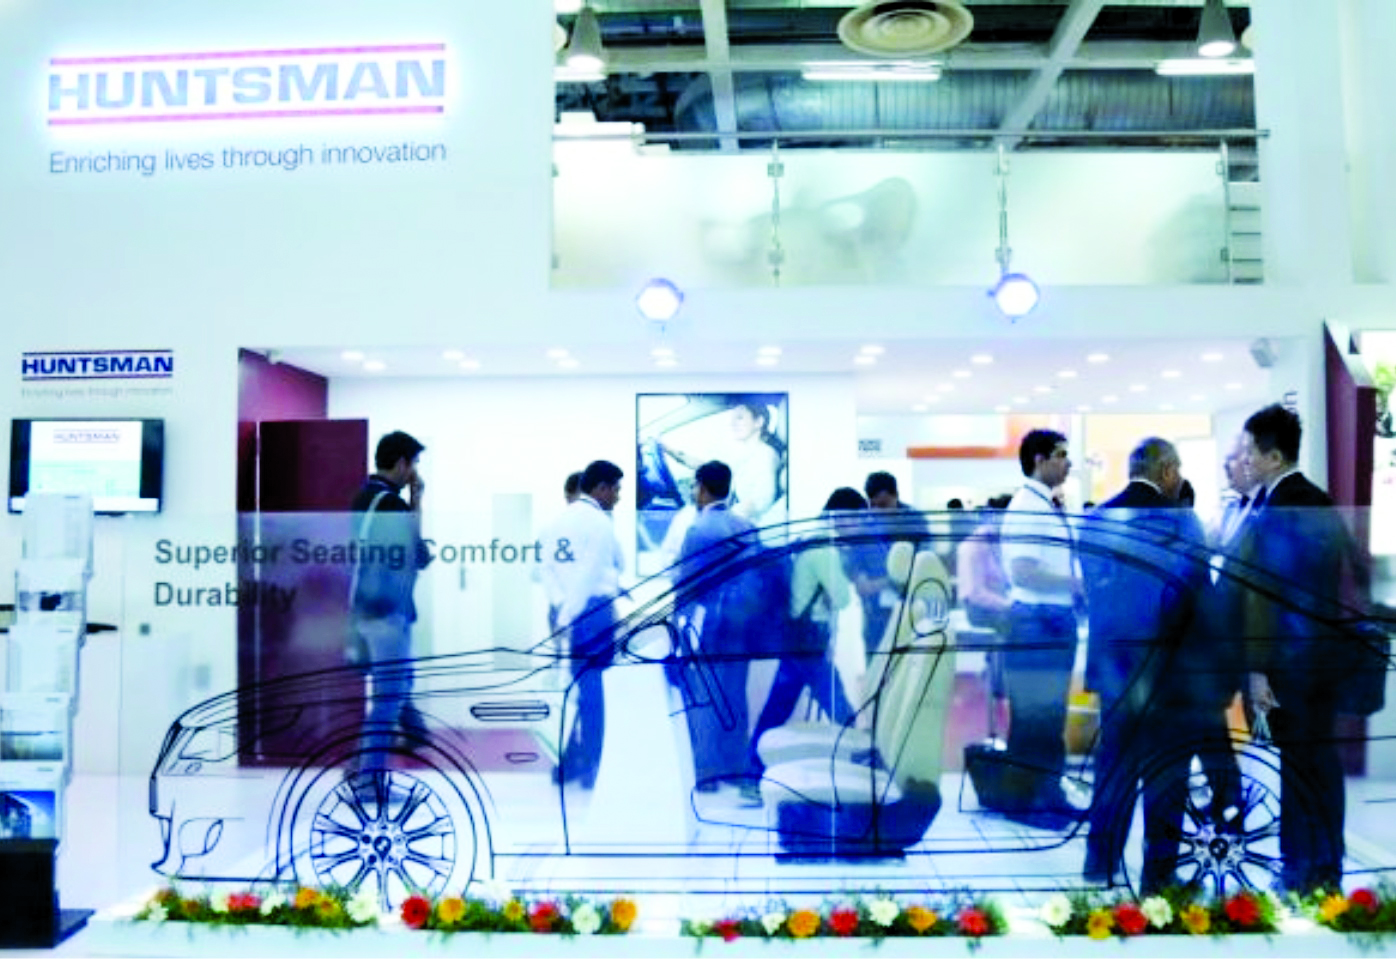 Huntsman has delivered strong growth in the Middle East region